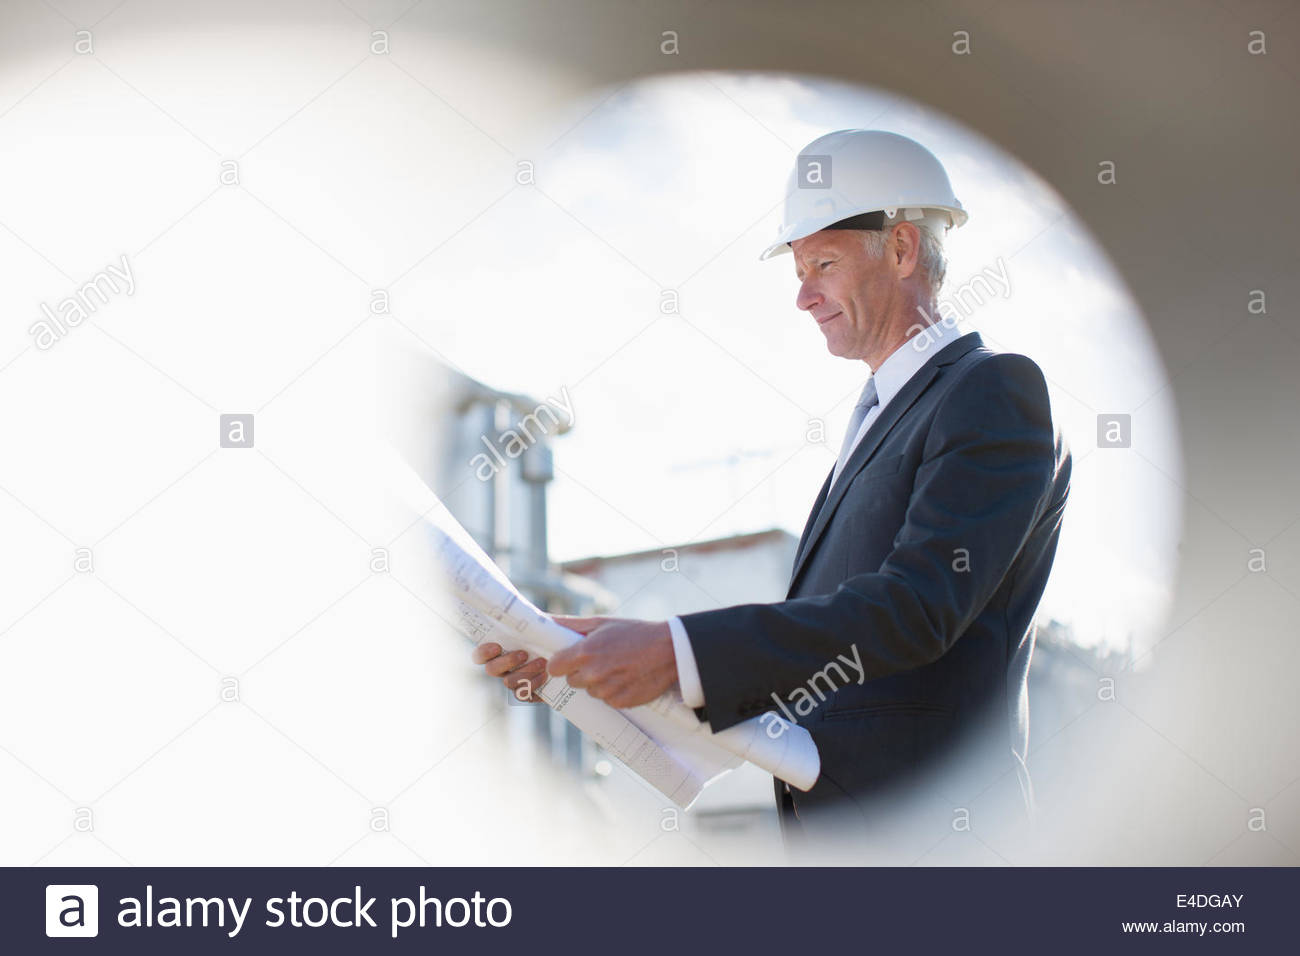 Businessman in hard-hat reviewing blueprints outdoors Photo Stock